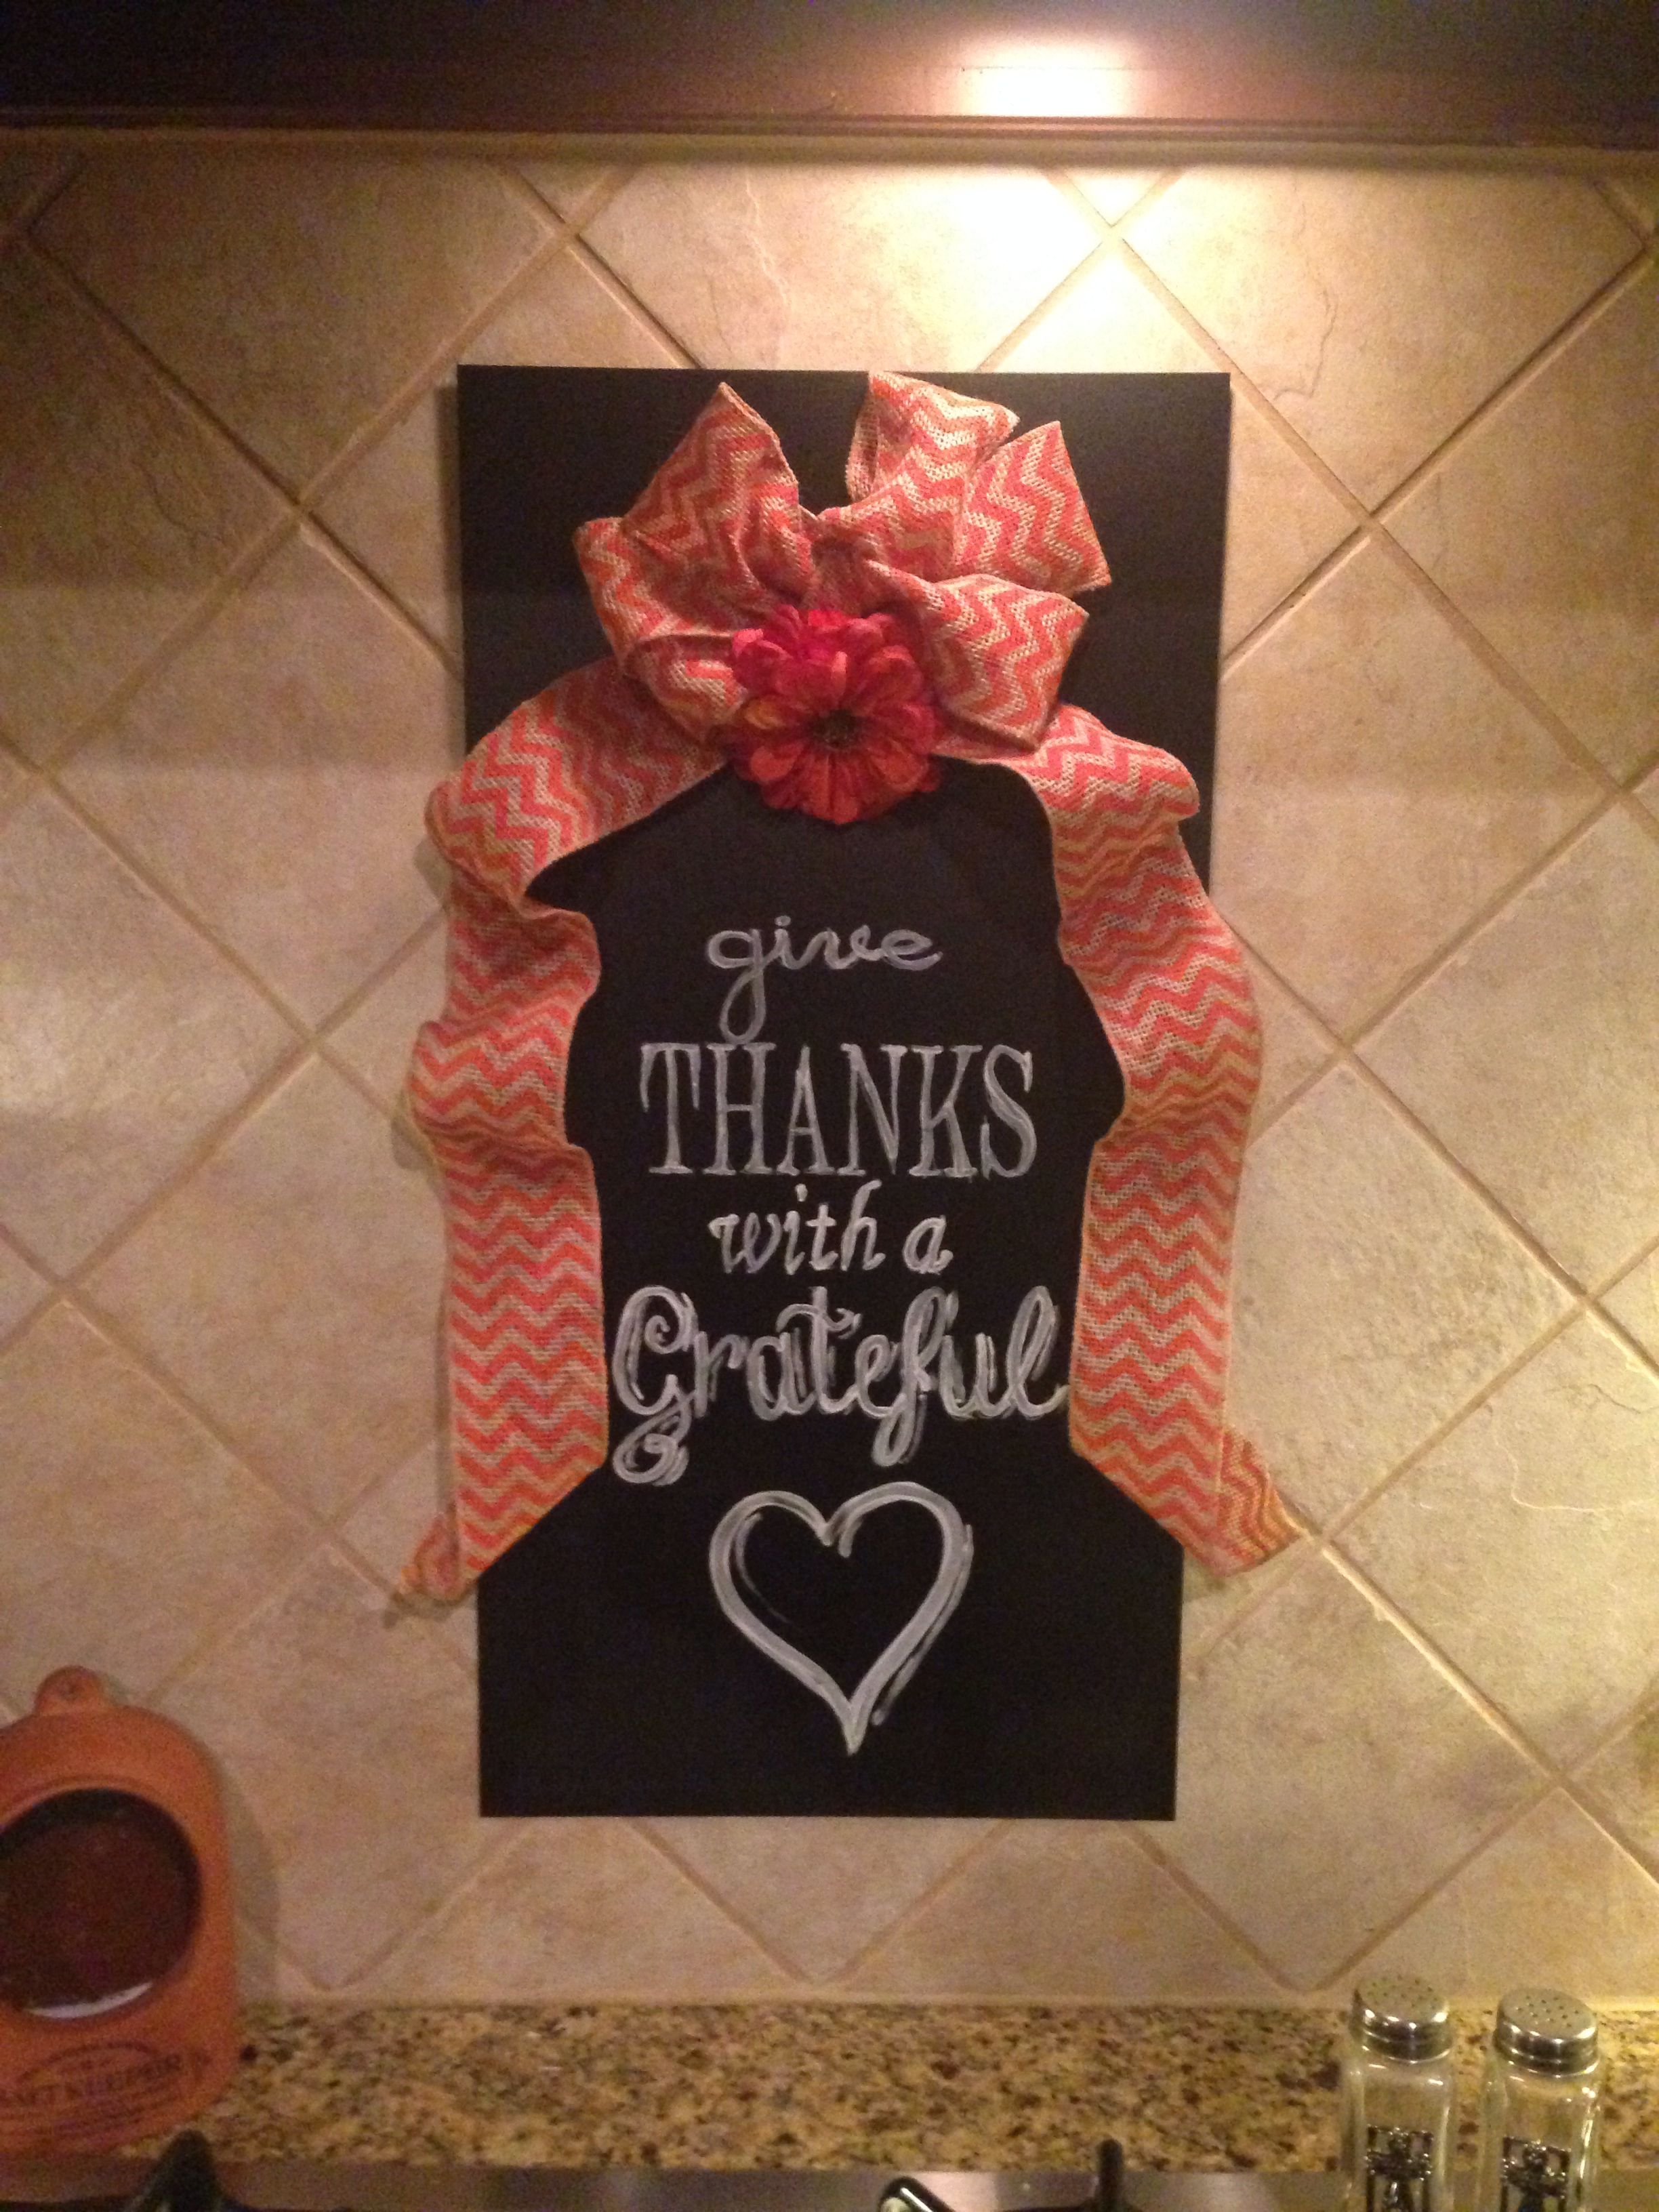 I Got This Magnetic Chalkboard Hobby Lobby I Plan To Change The Message Ribbon Decor Seasonally Sometimes Wit Diy Gifts Fall Thanksgiving Chalkboard Art